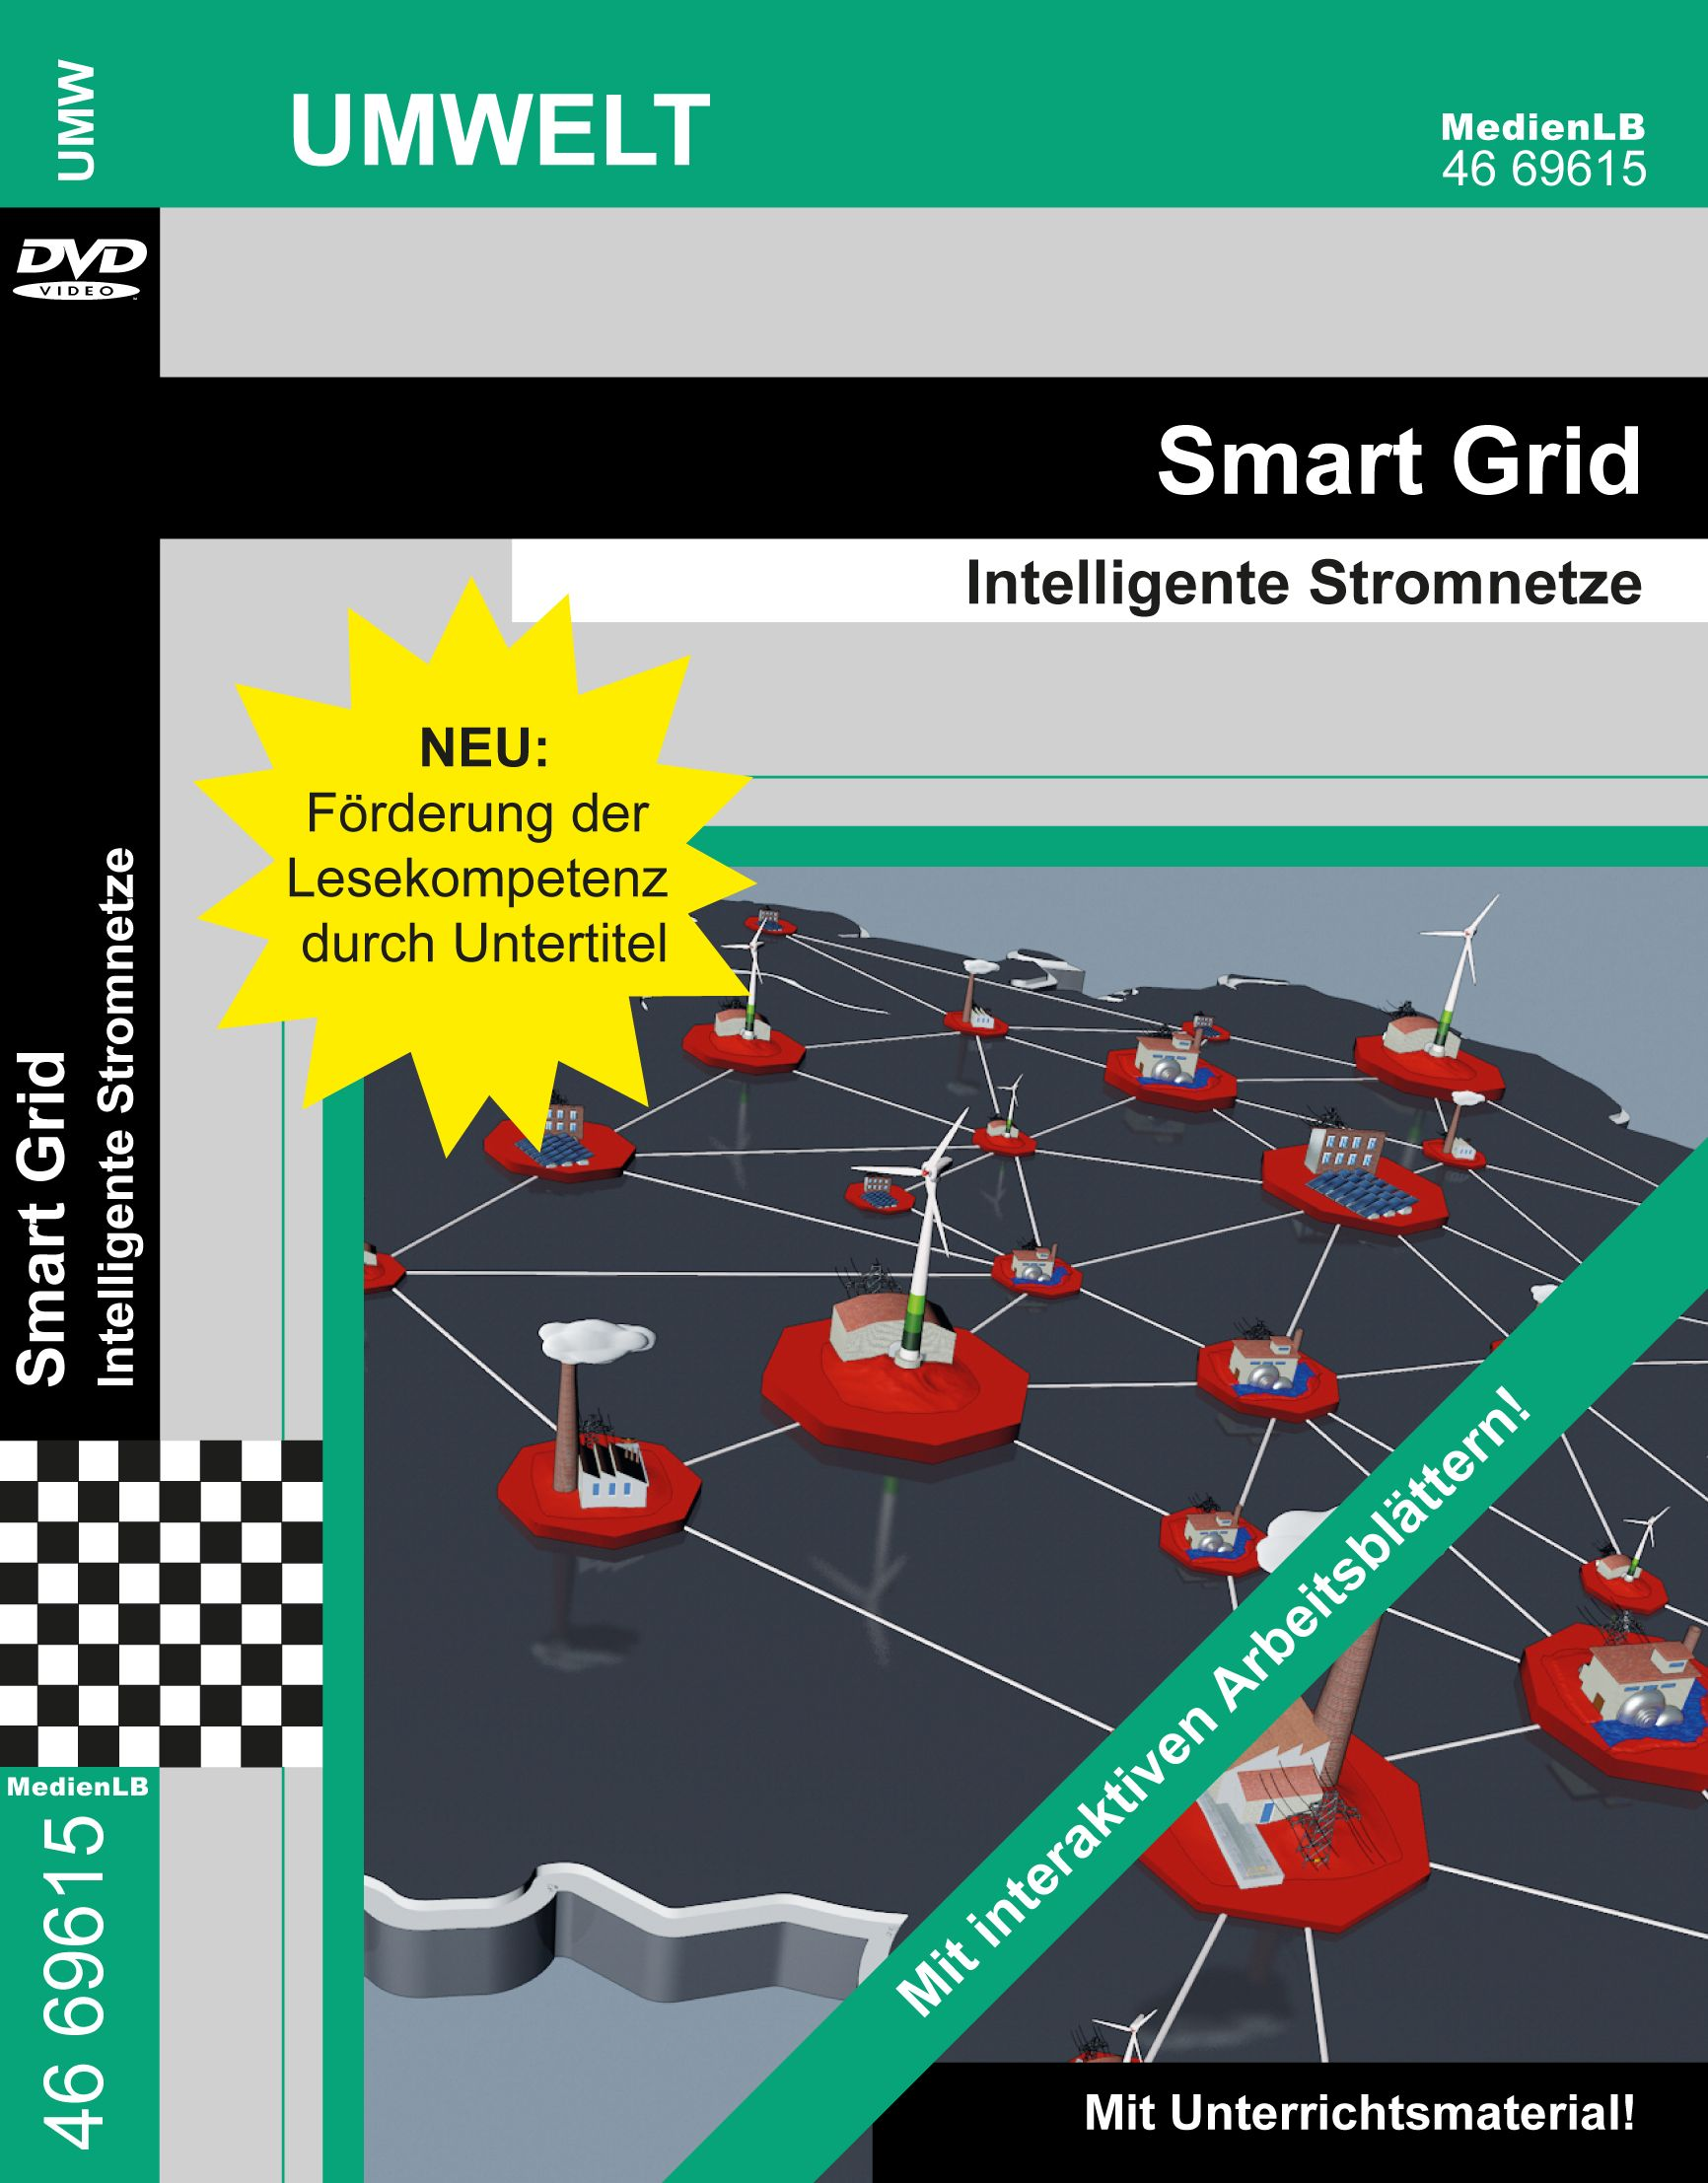 Smart Grid - DVD - MedienLB